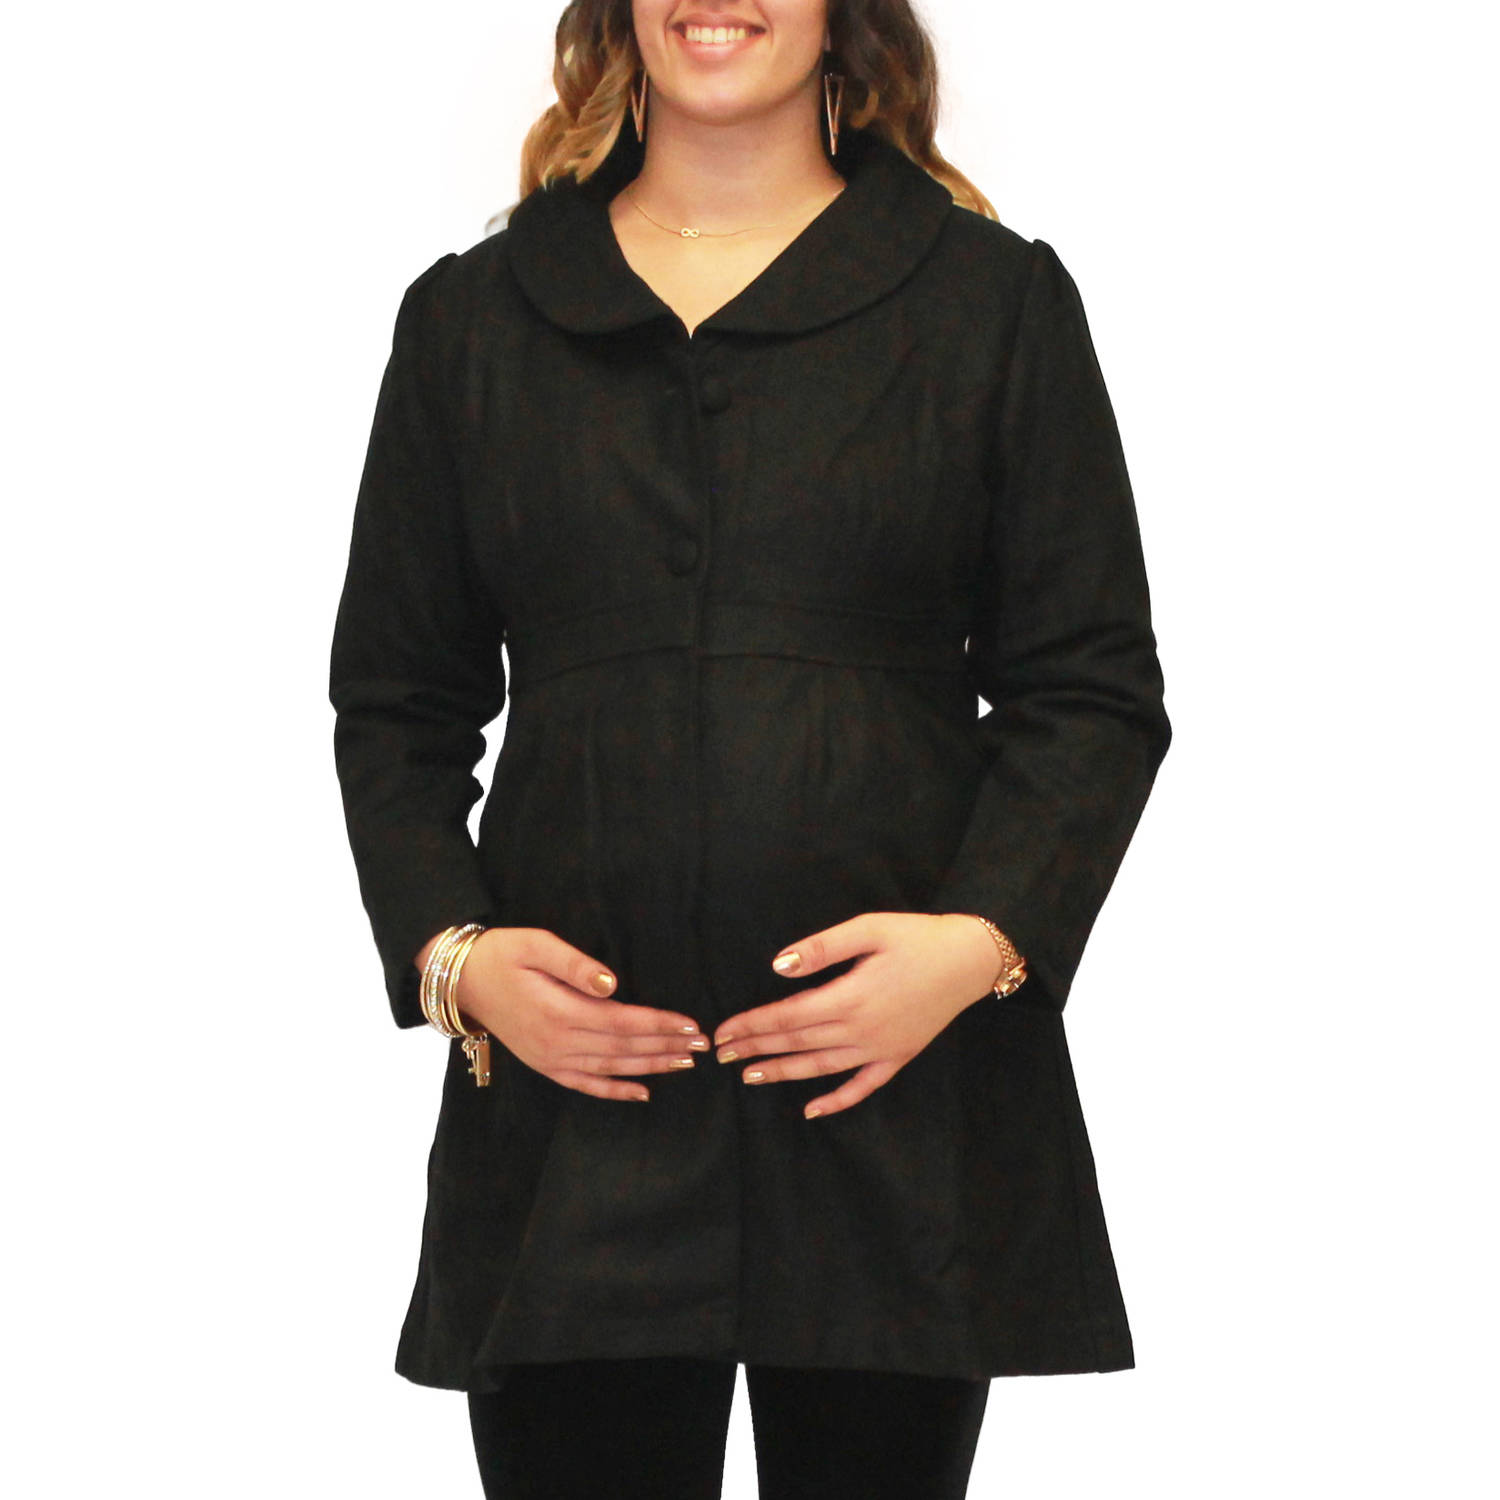 Dynabelly Maternity Button-Up Empire Waist Peacoat